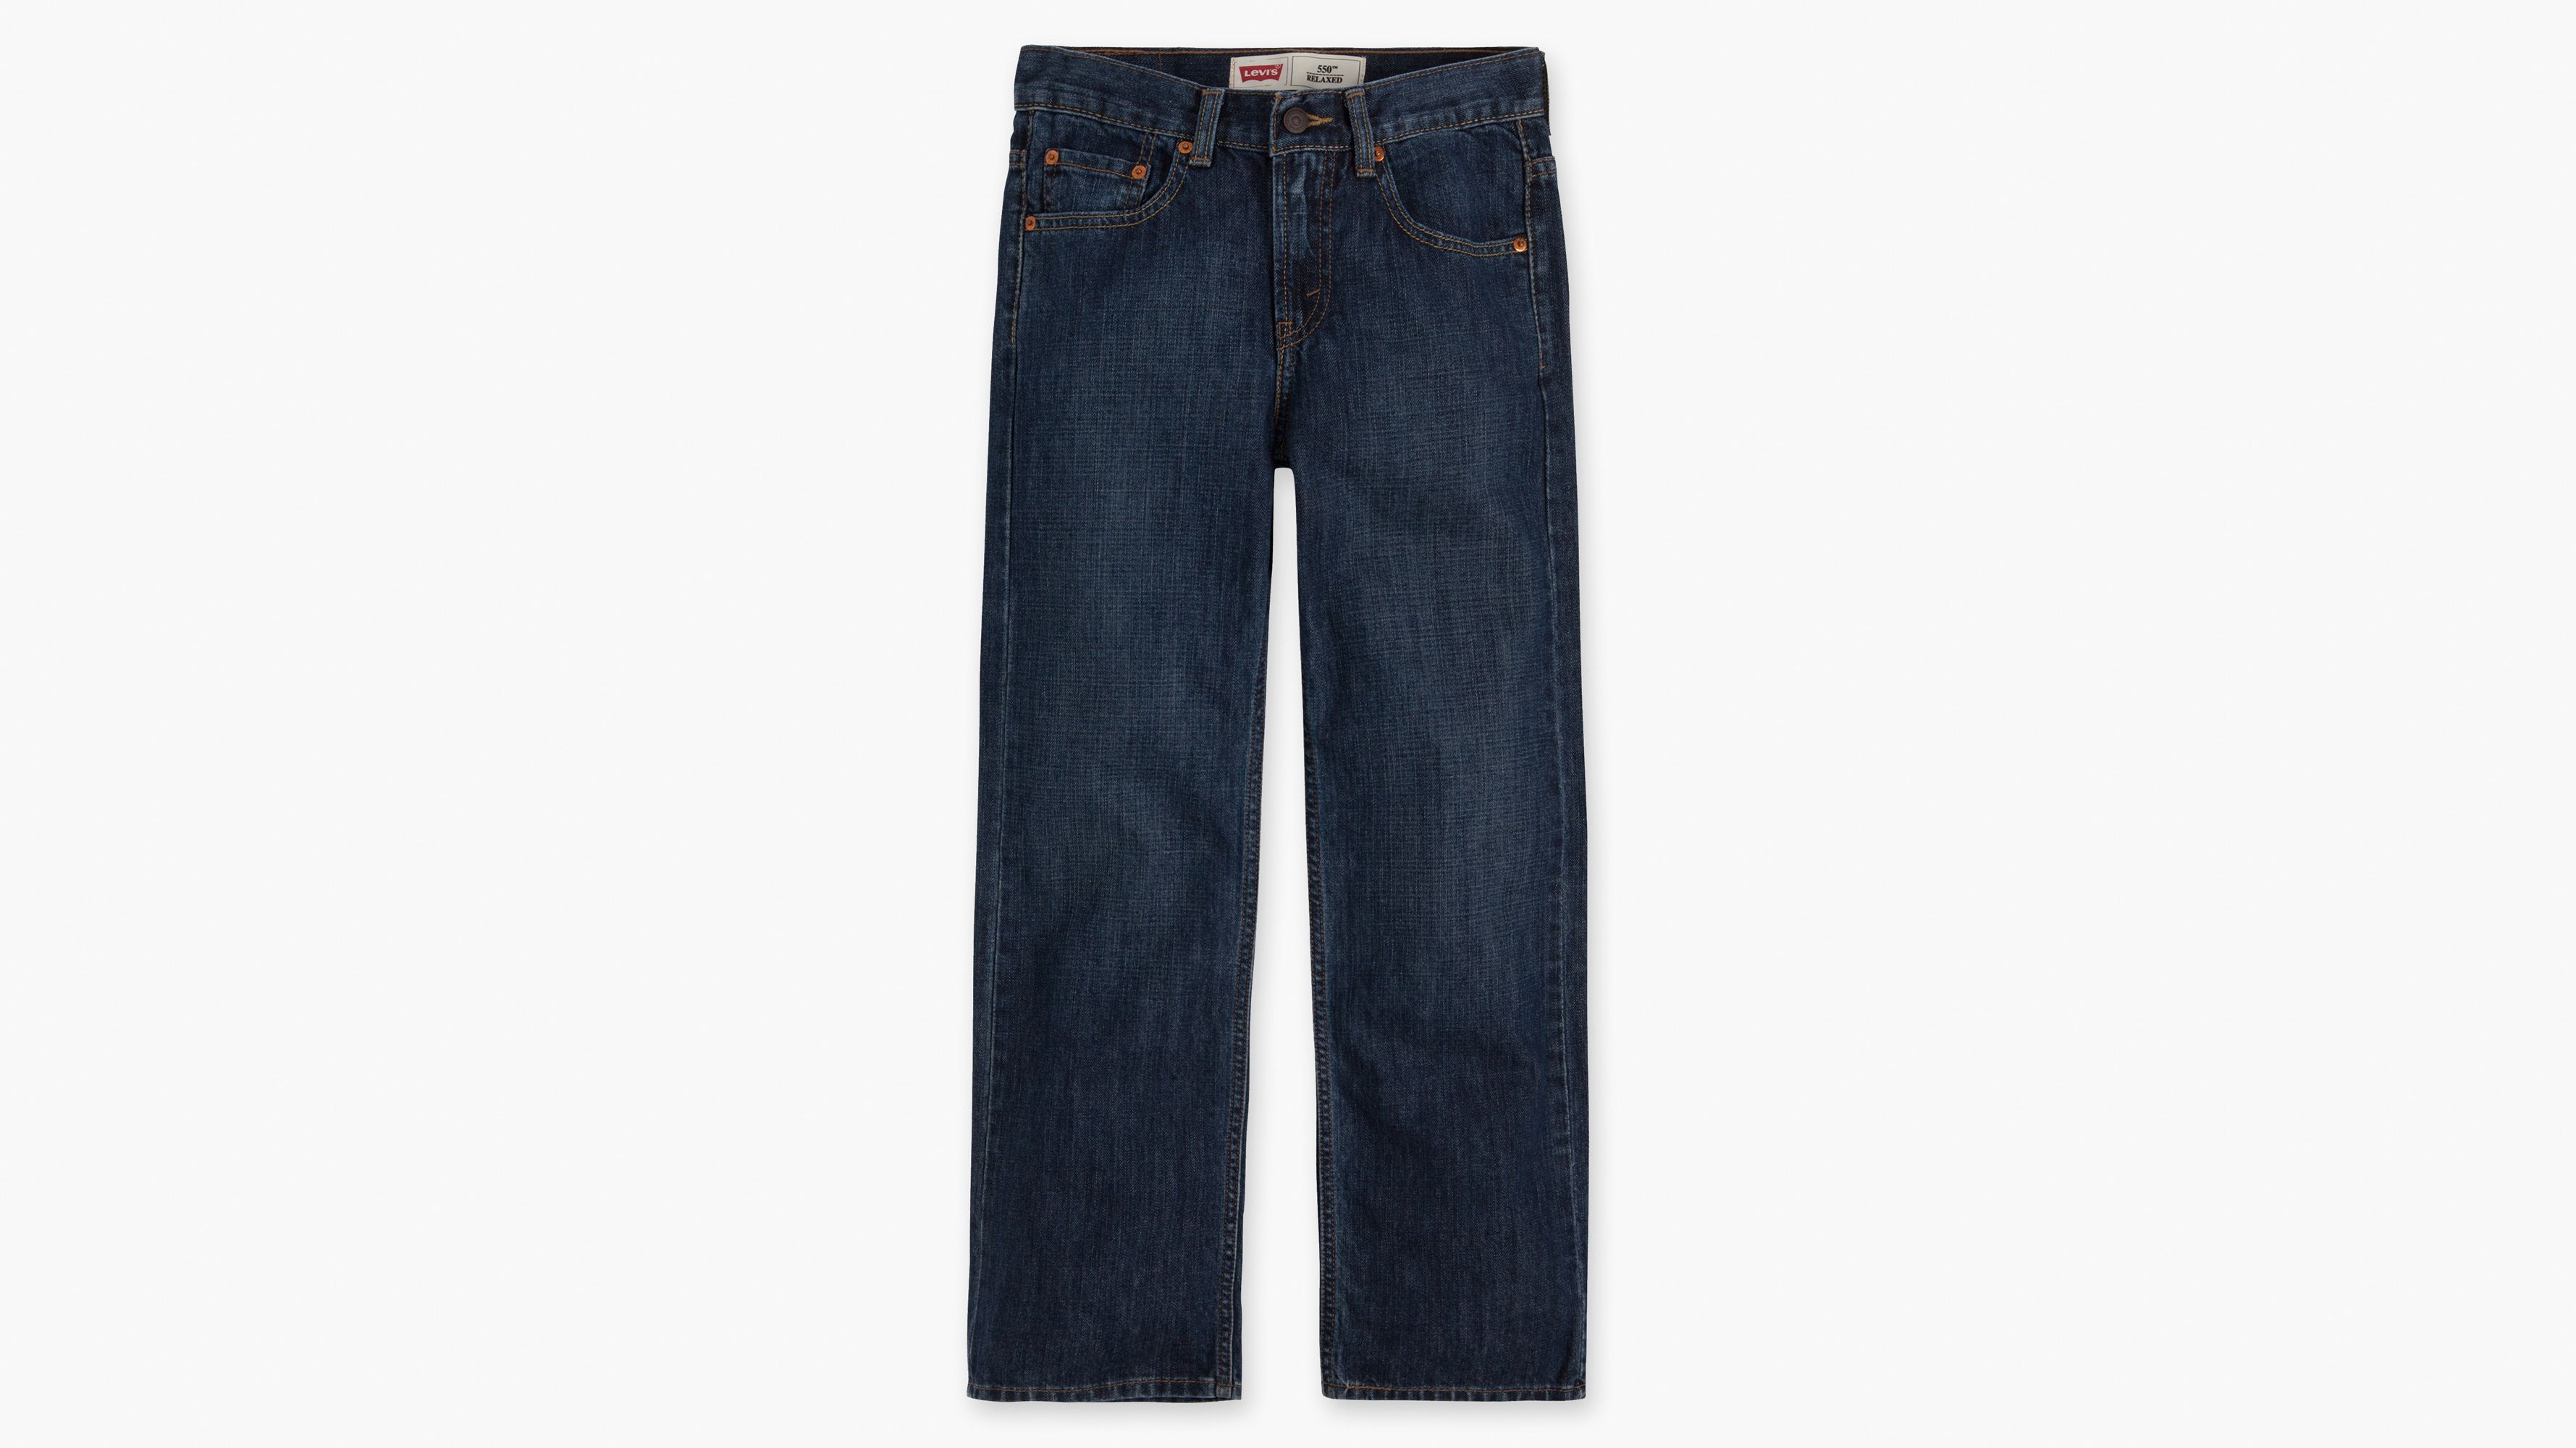 Boys (8-20) 550™ Relaxed Fit Jeans (Husky) - Dark Crosshatch